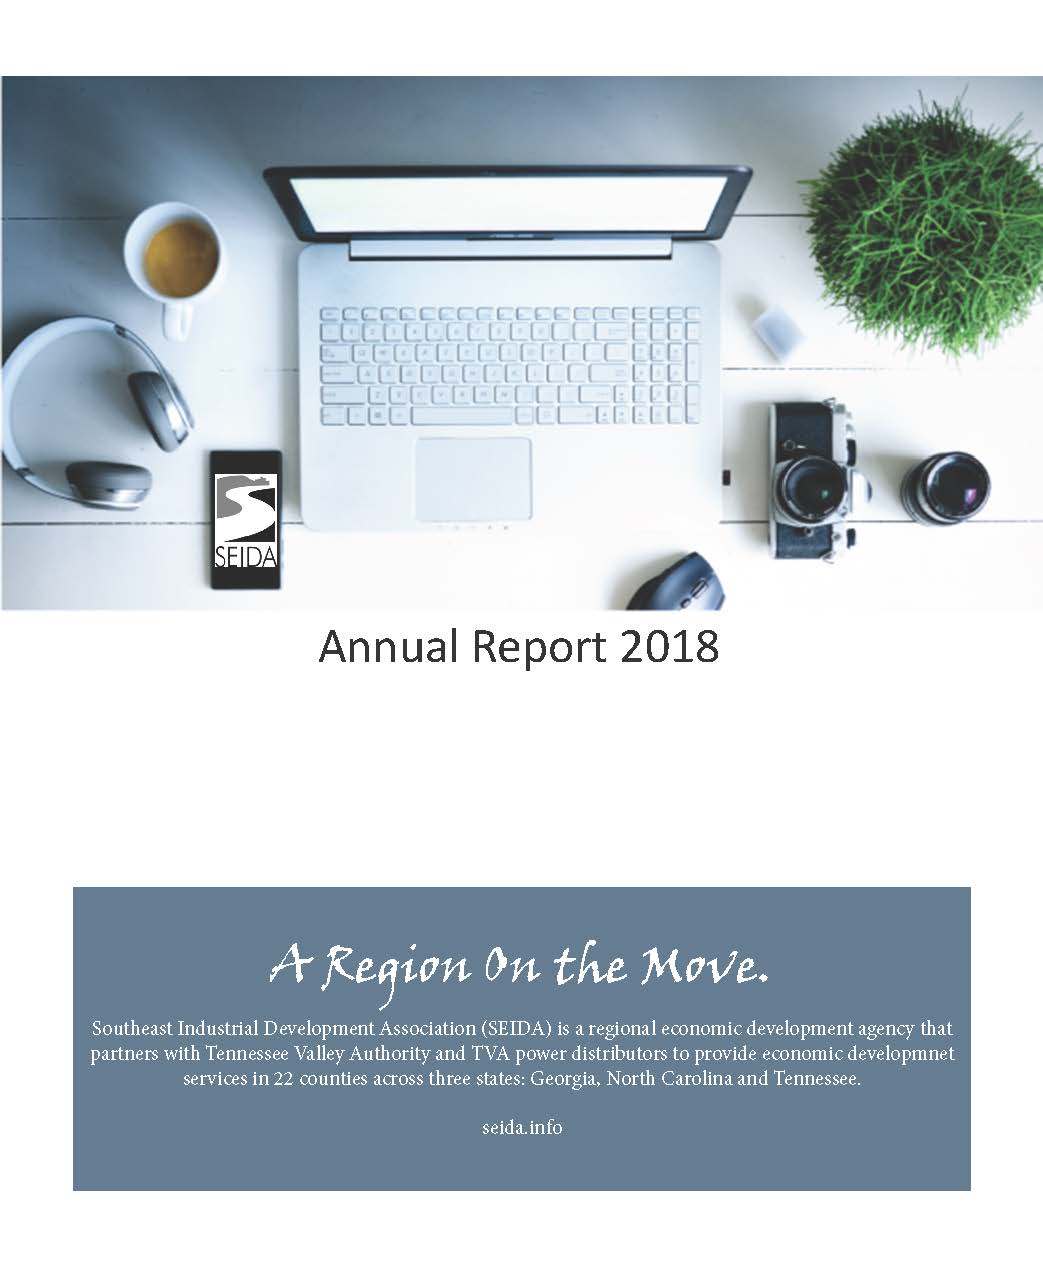 SEIDA-Annual-Report-2018-Cover